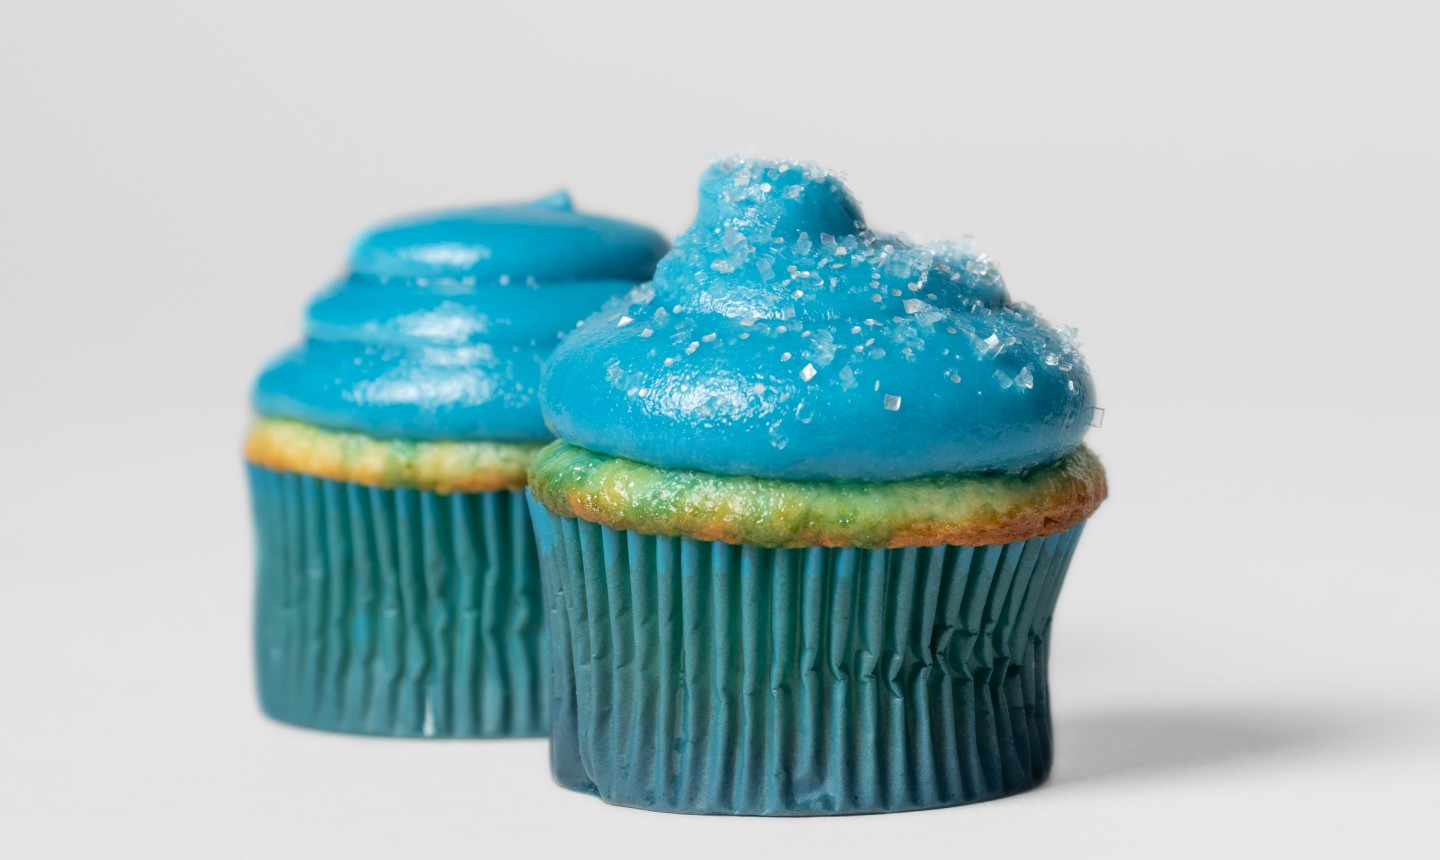 Cupcake with glowing blue frosting